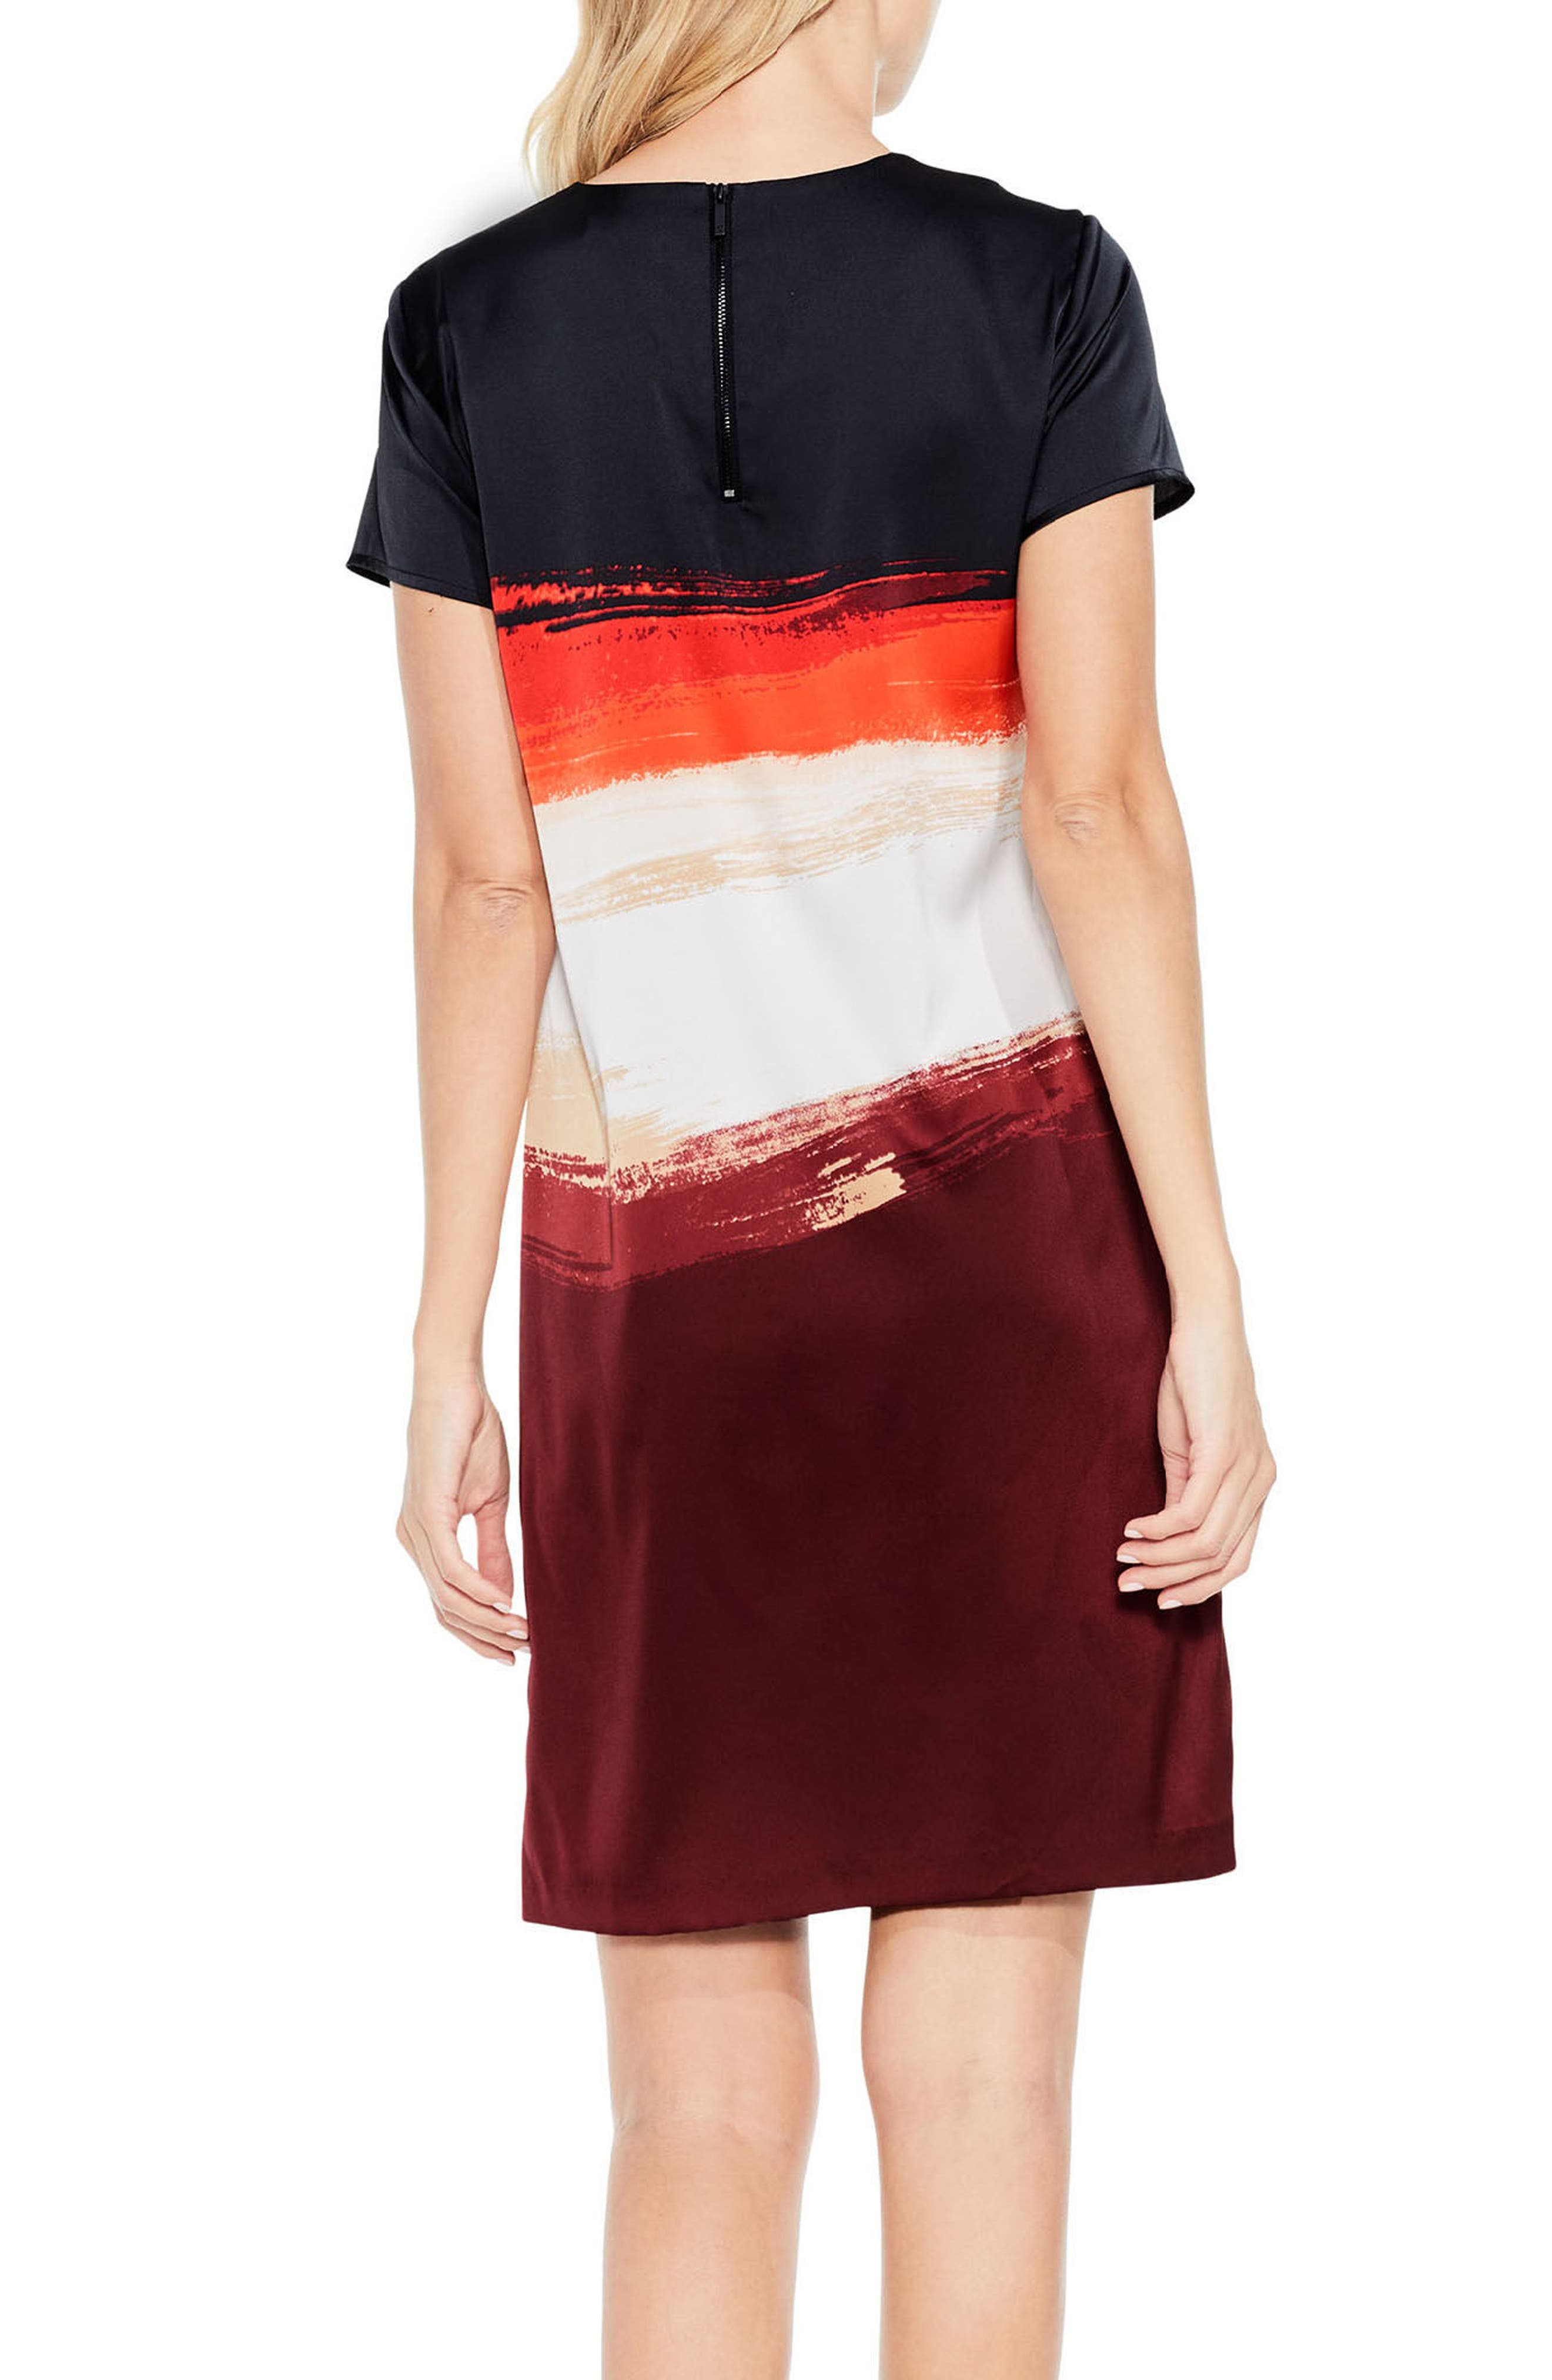 Alternate Image 3  - Vince Camuto Brushstroke Horizons Dress (Regular & Petite)